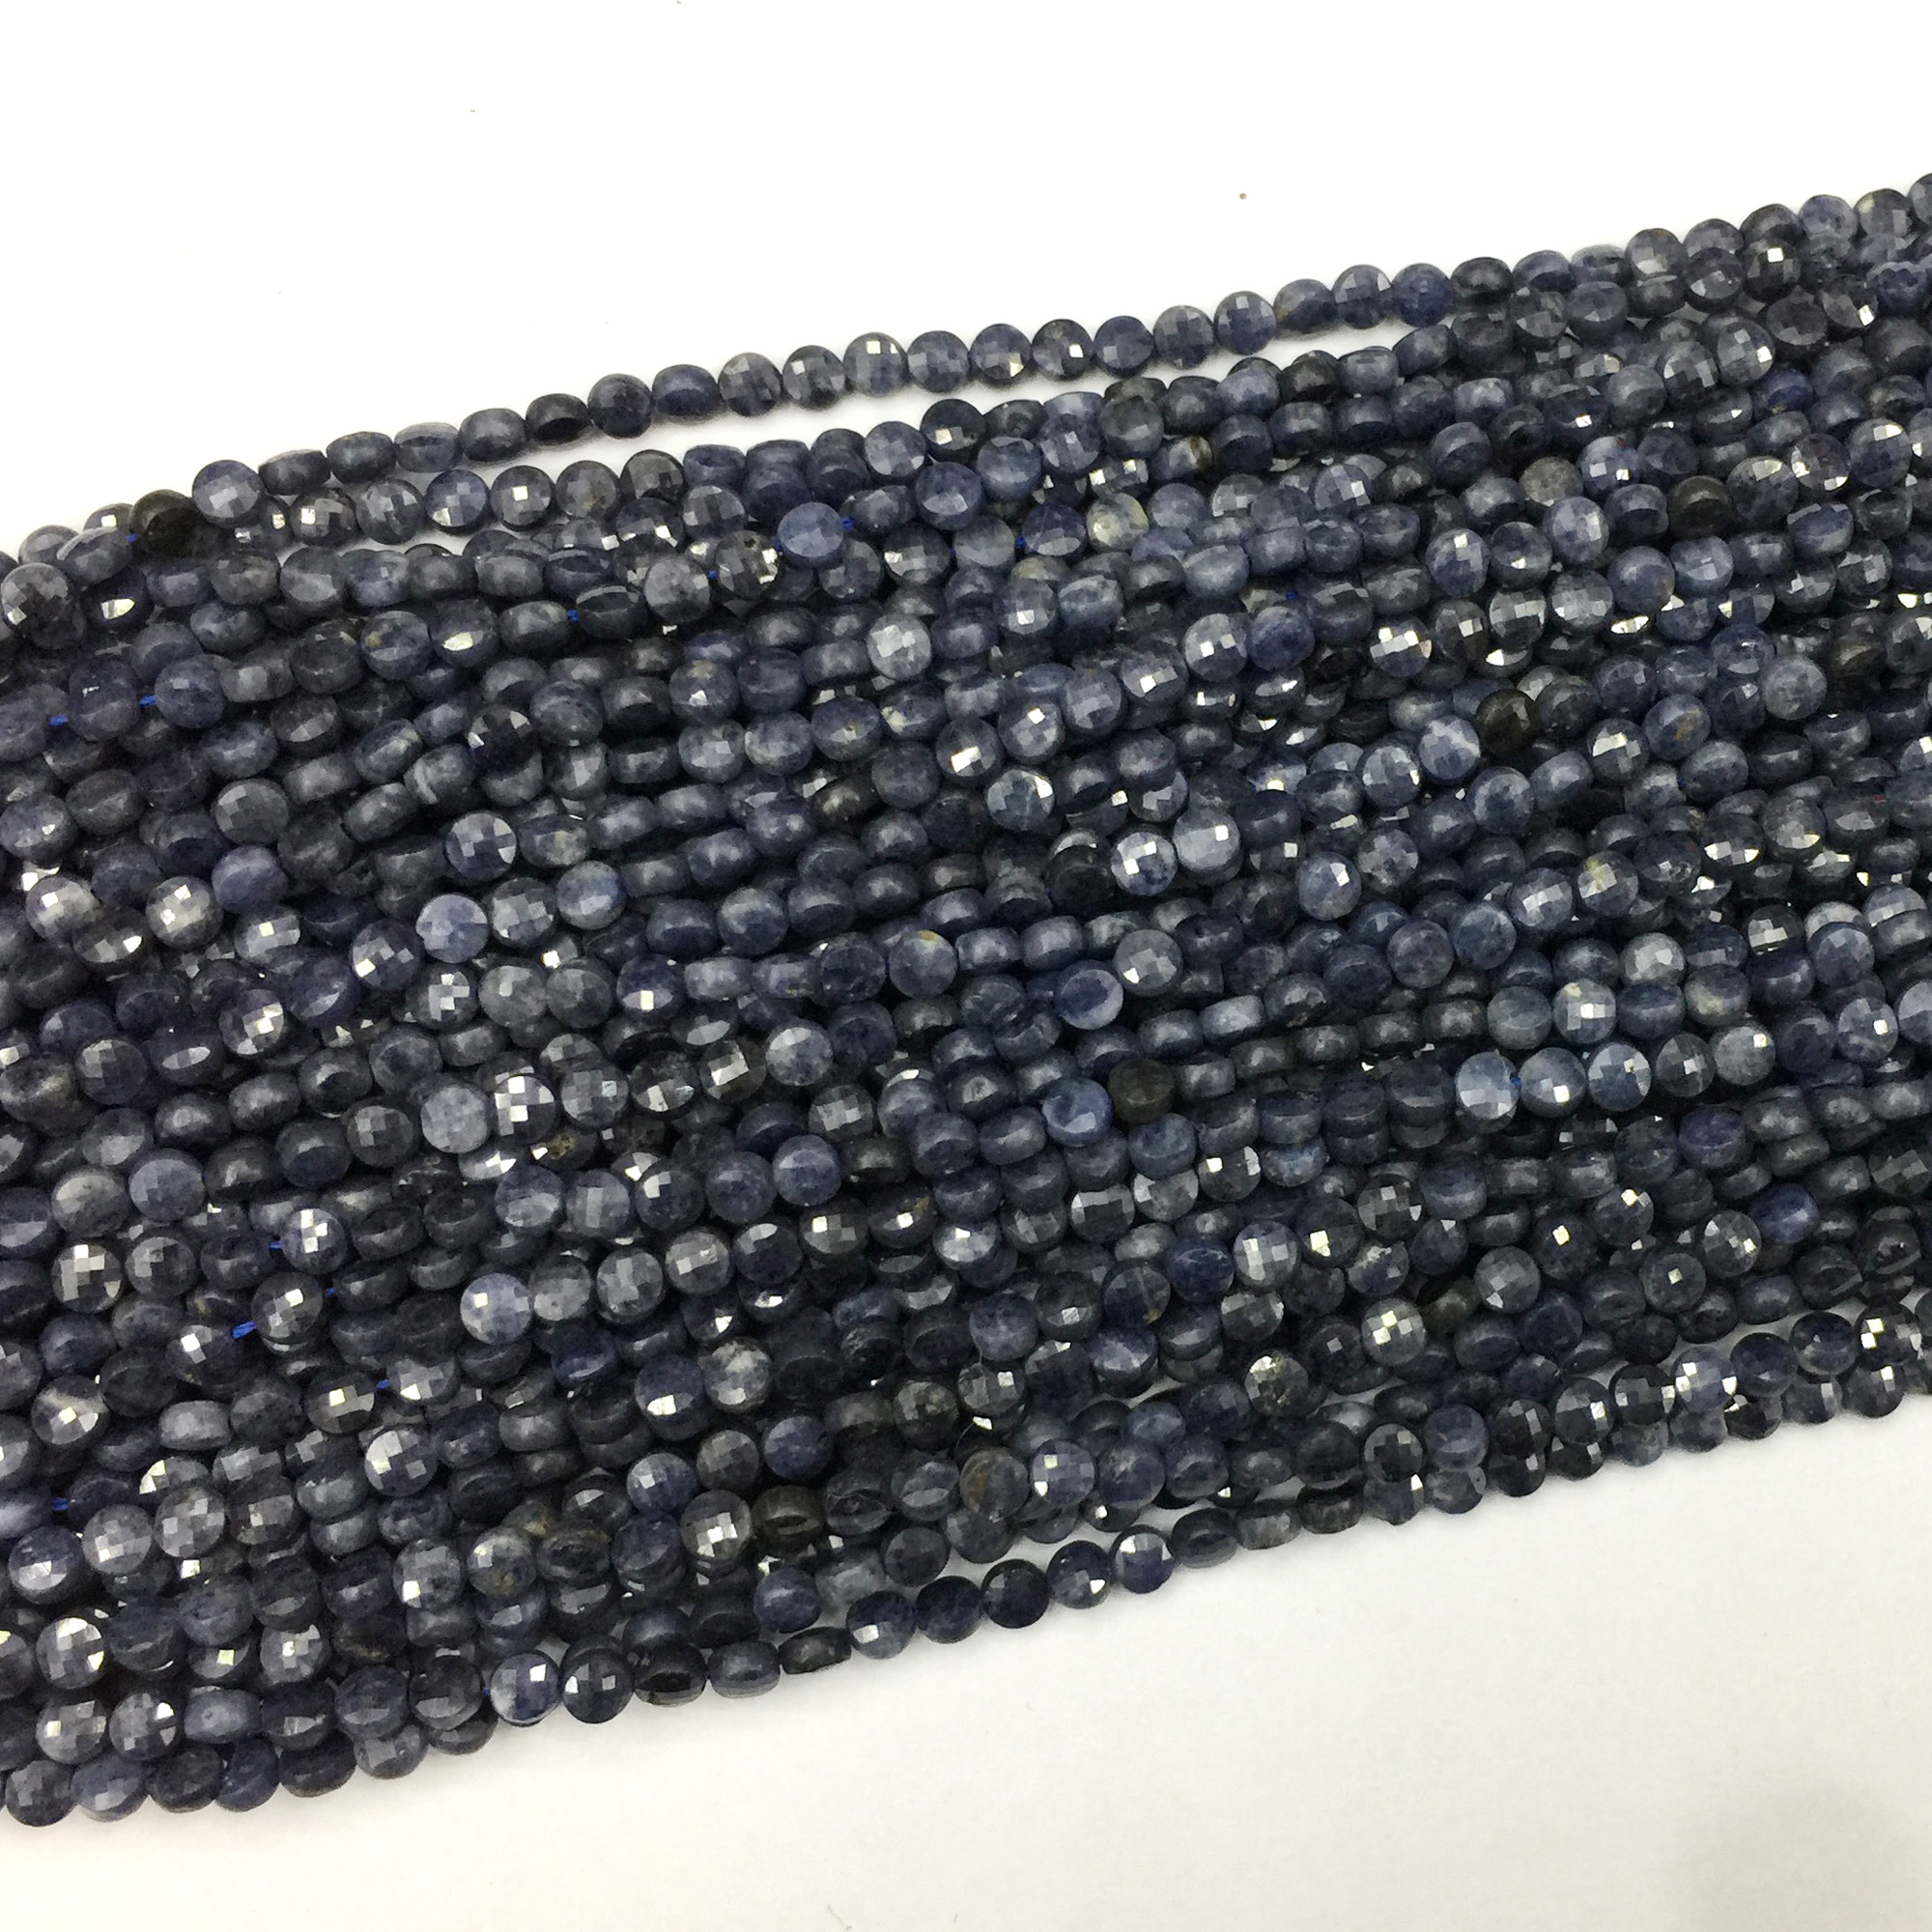 Genuine Natural Blue Sapphire Hand Cut Faceted Flat Coin Small Beads Necklaces Or Bracelets 4mm 06213